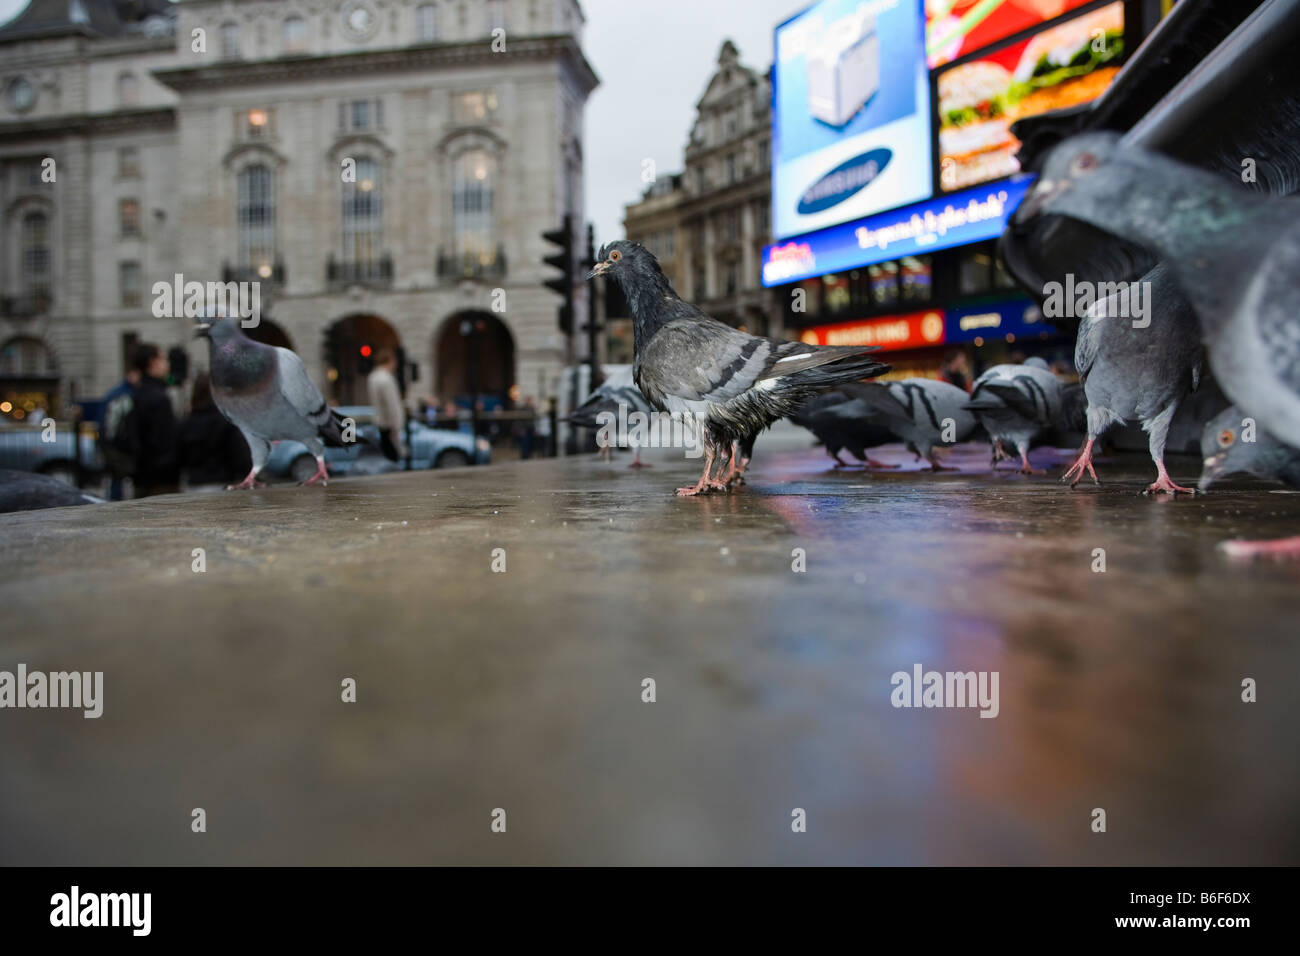 pigeon in london - Stock Image